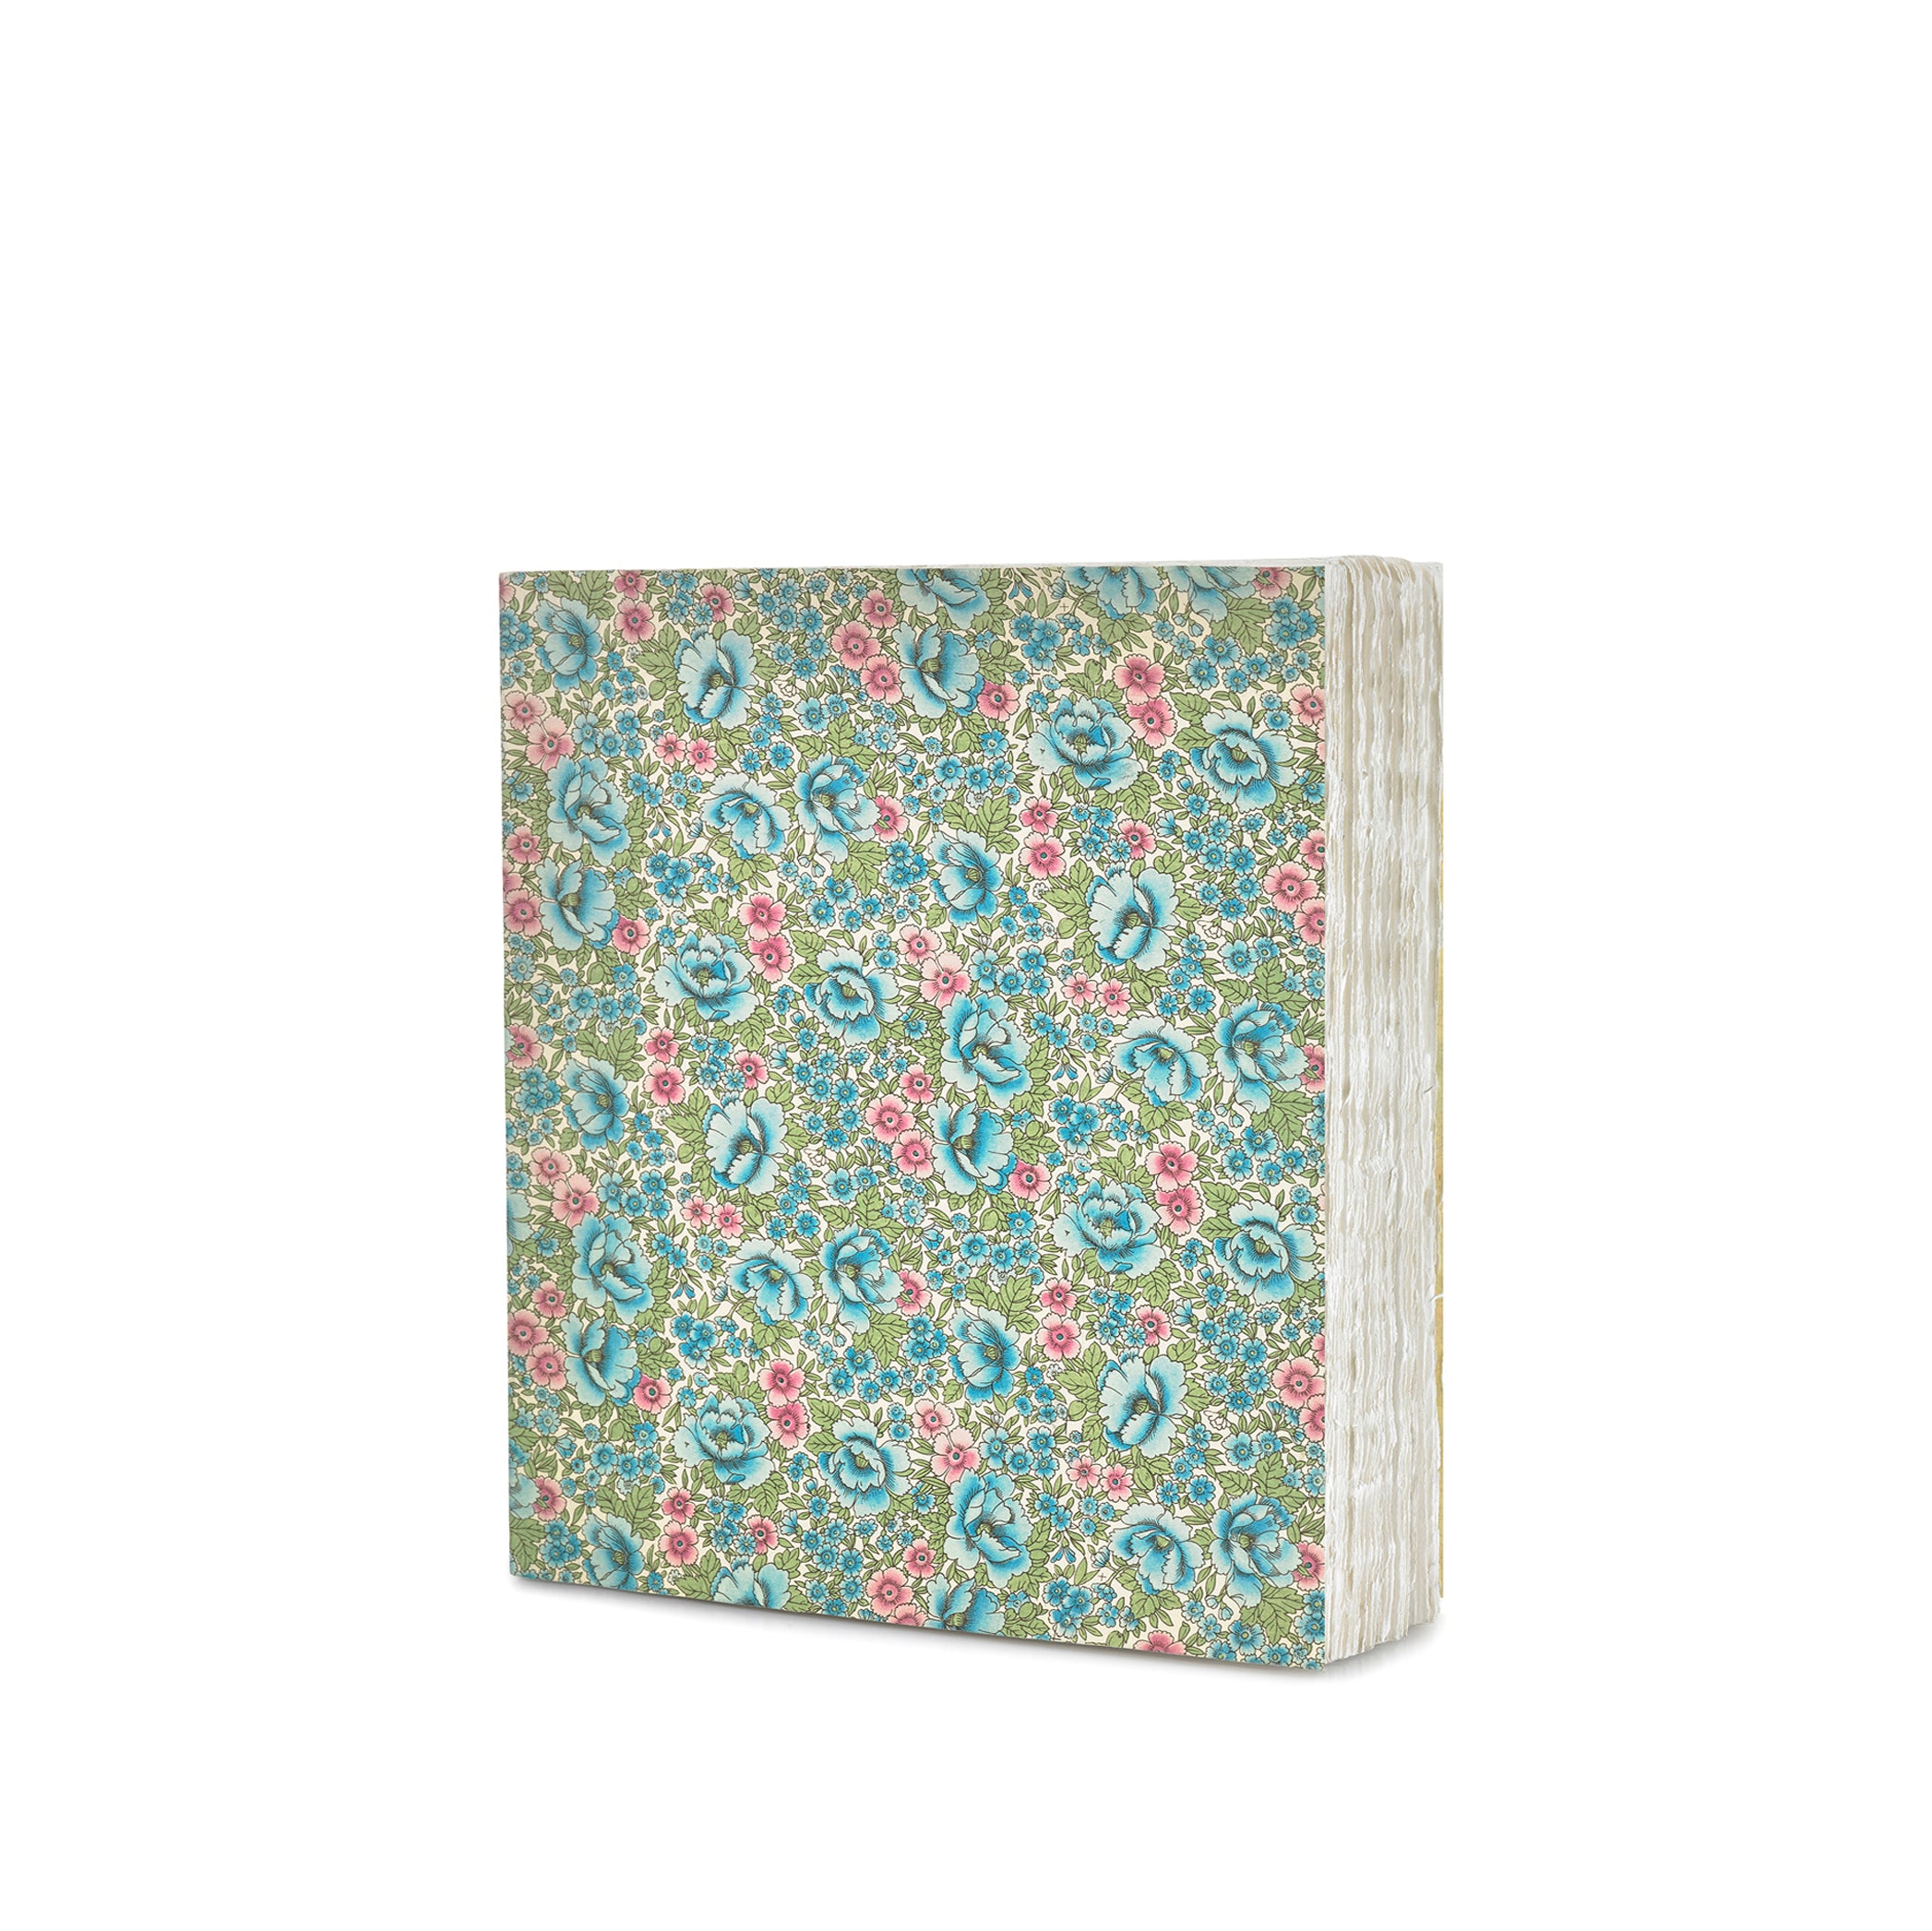 Handprinted Japanese Chiyogami Covered Sketchbook, Blue Roses